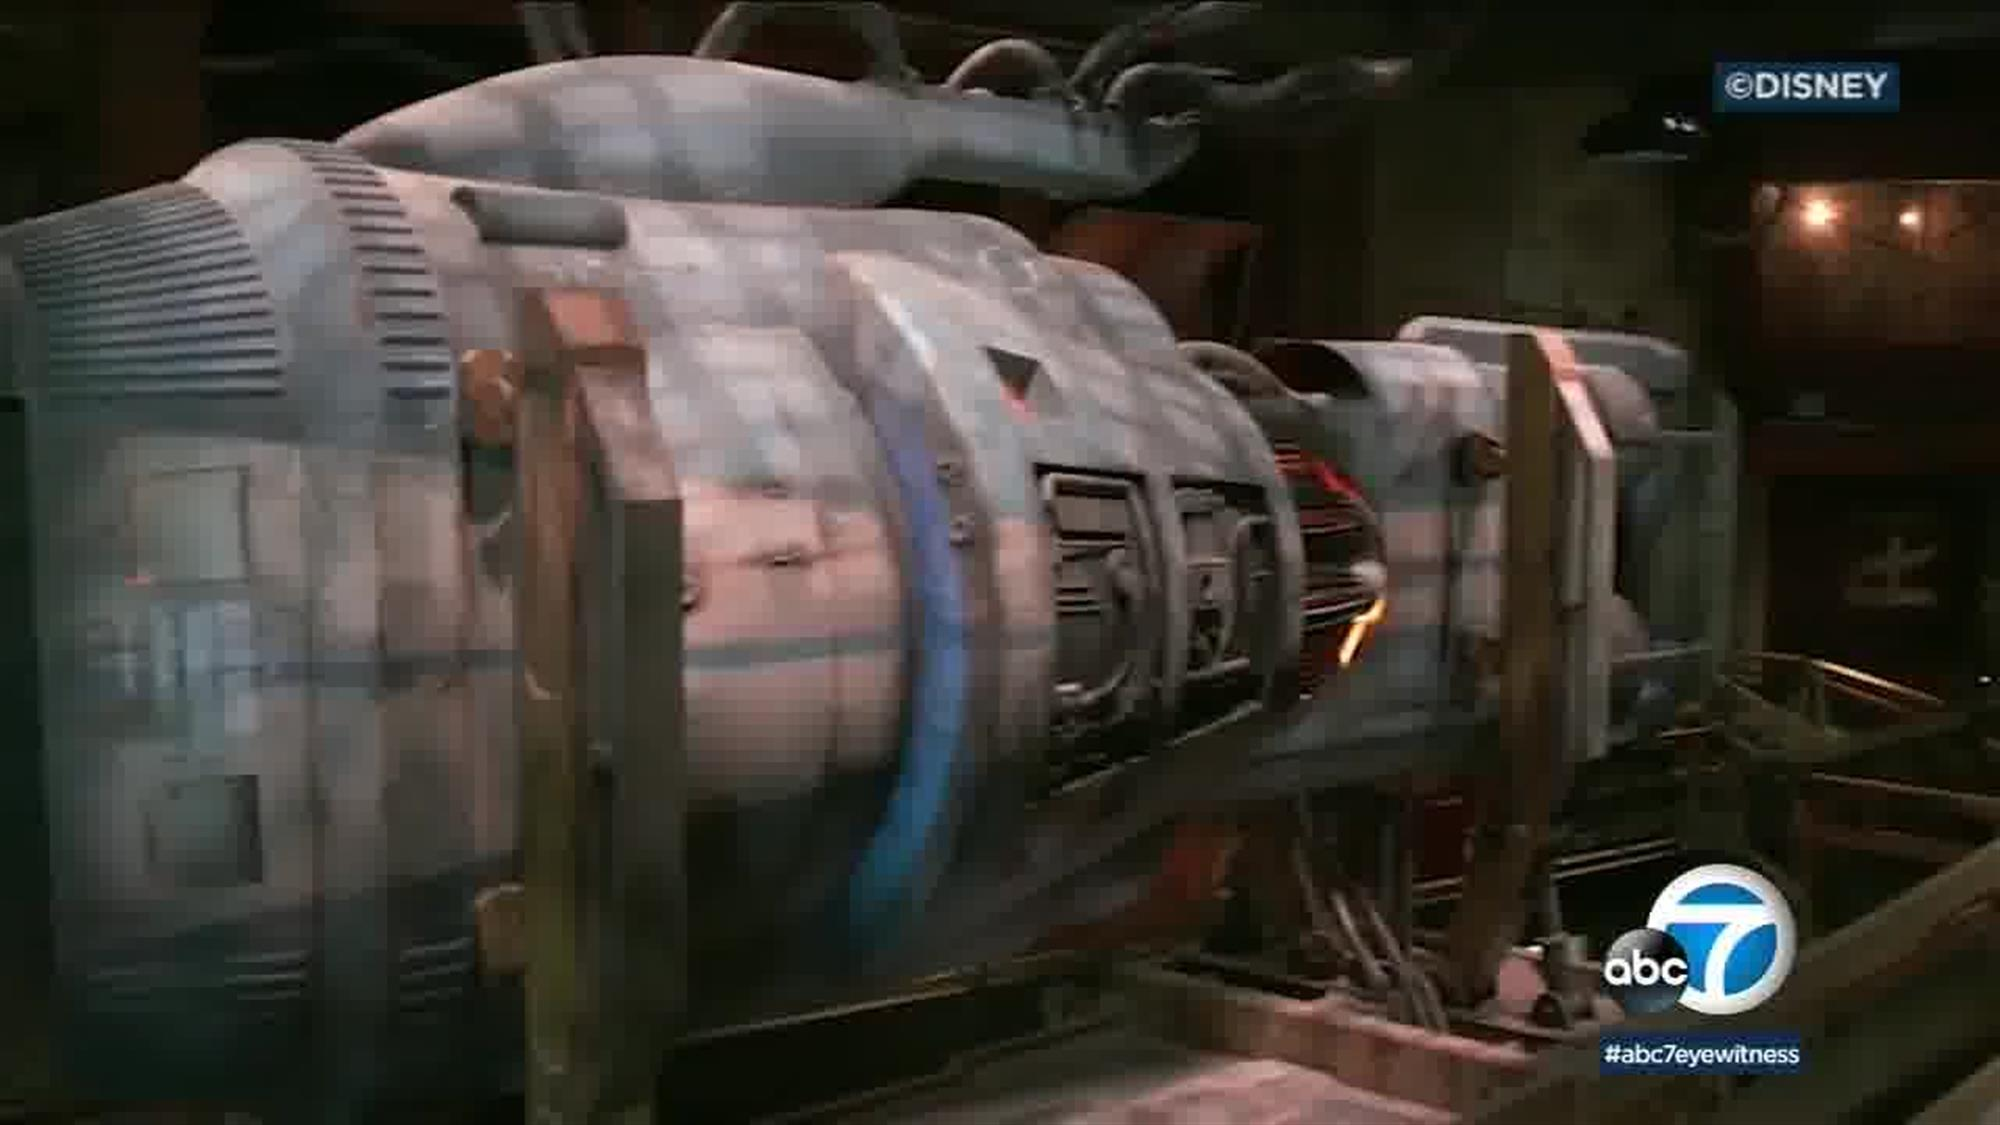 A large capsule resembling a pod racer engine, which is rumored to appear in the queue for one of the attractions. We'll have to wait until the end of May to find out for sure!